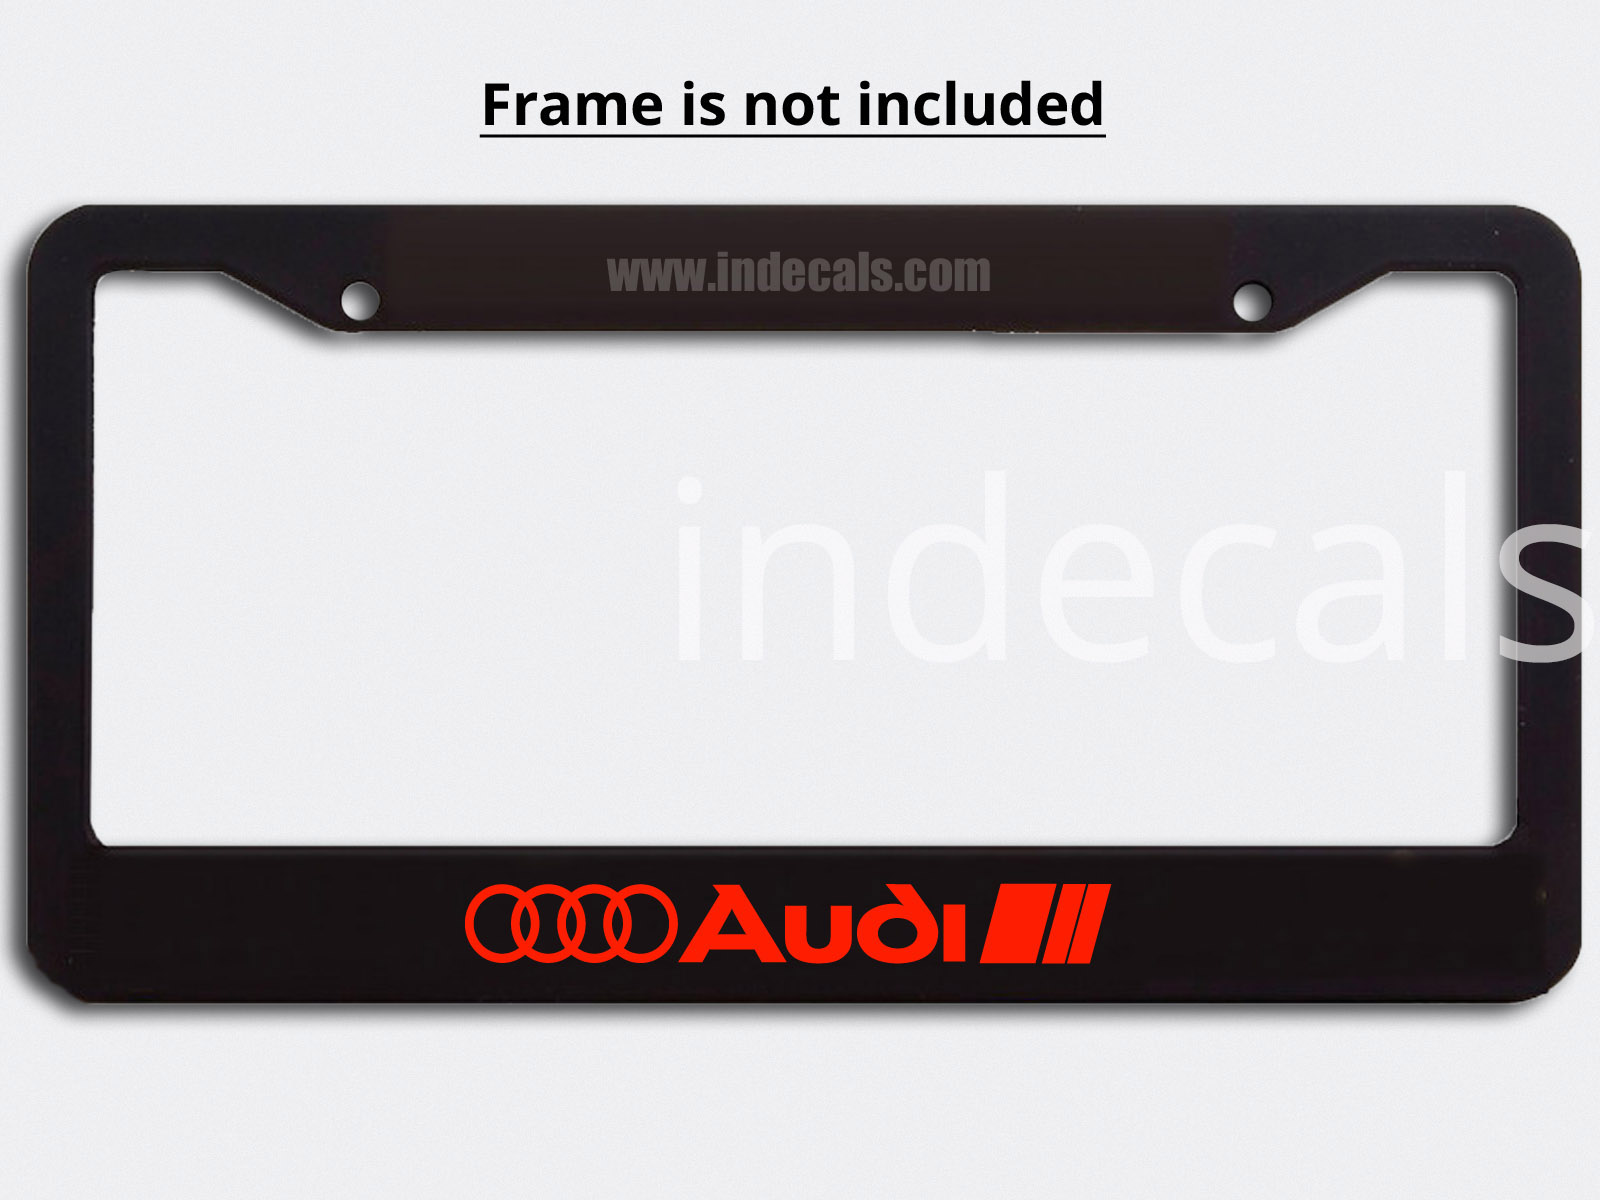 3 x Audi Stickers for Plate Frame - Red